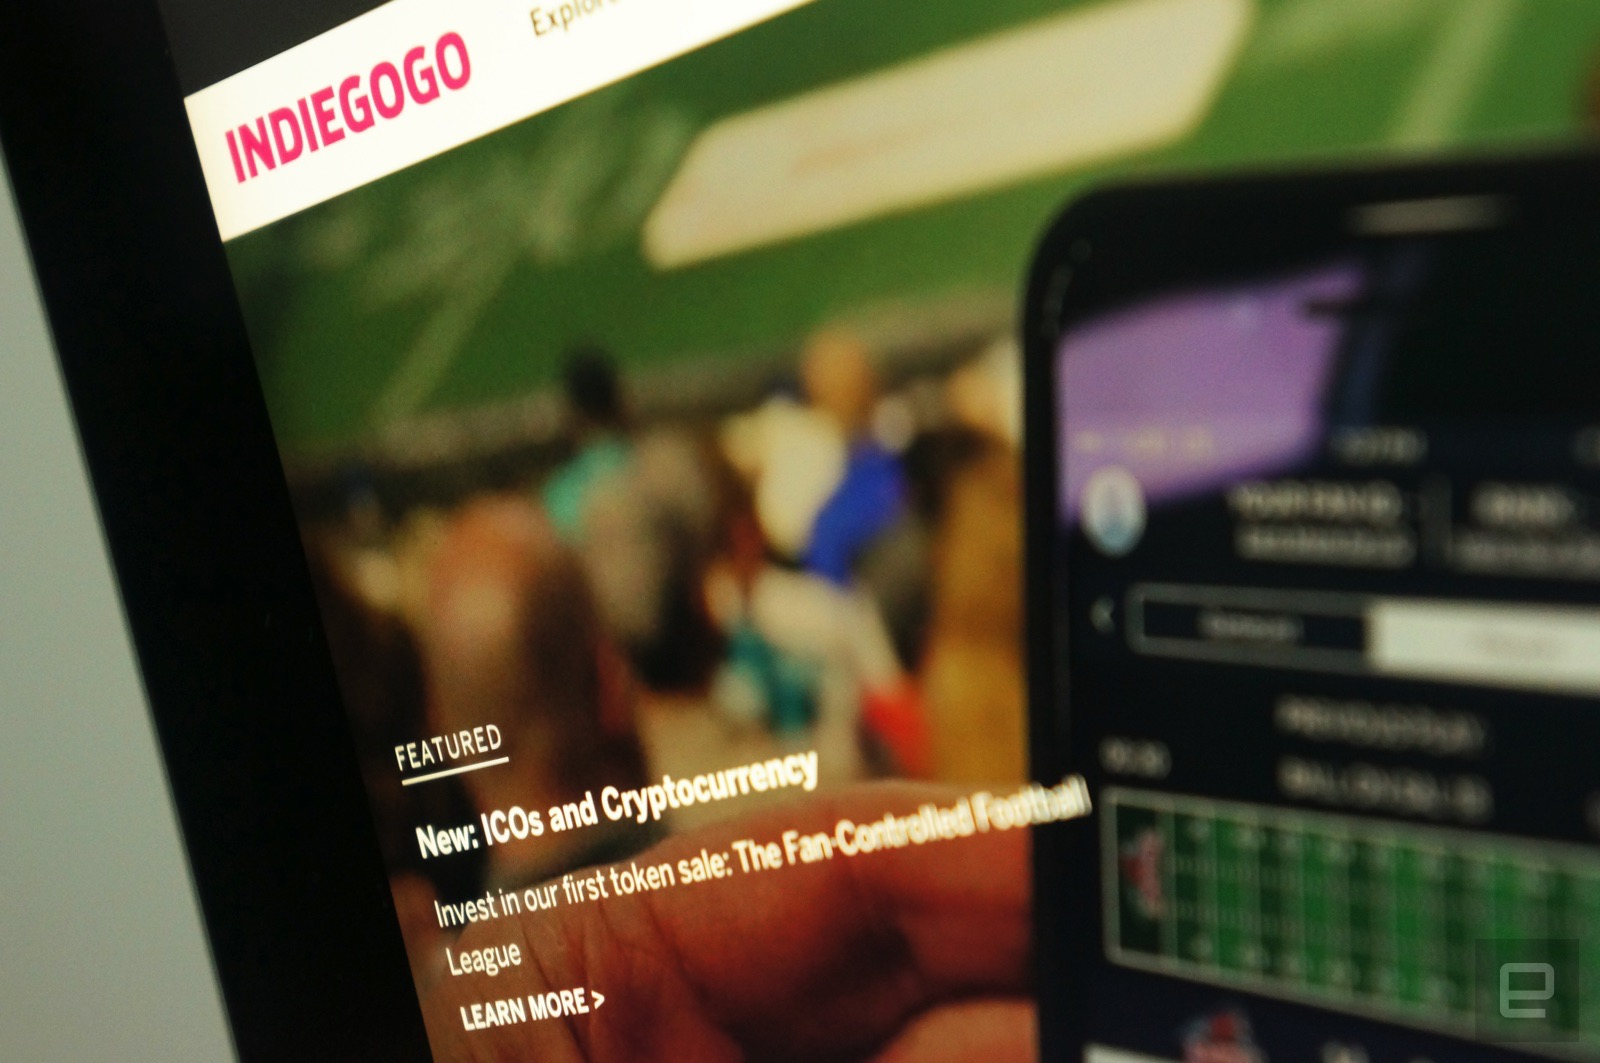 Indiegogo makes it easy to hop on the cryptocurrency bandwagon